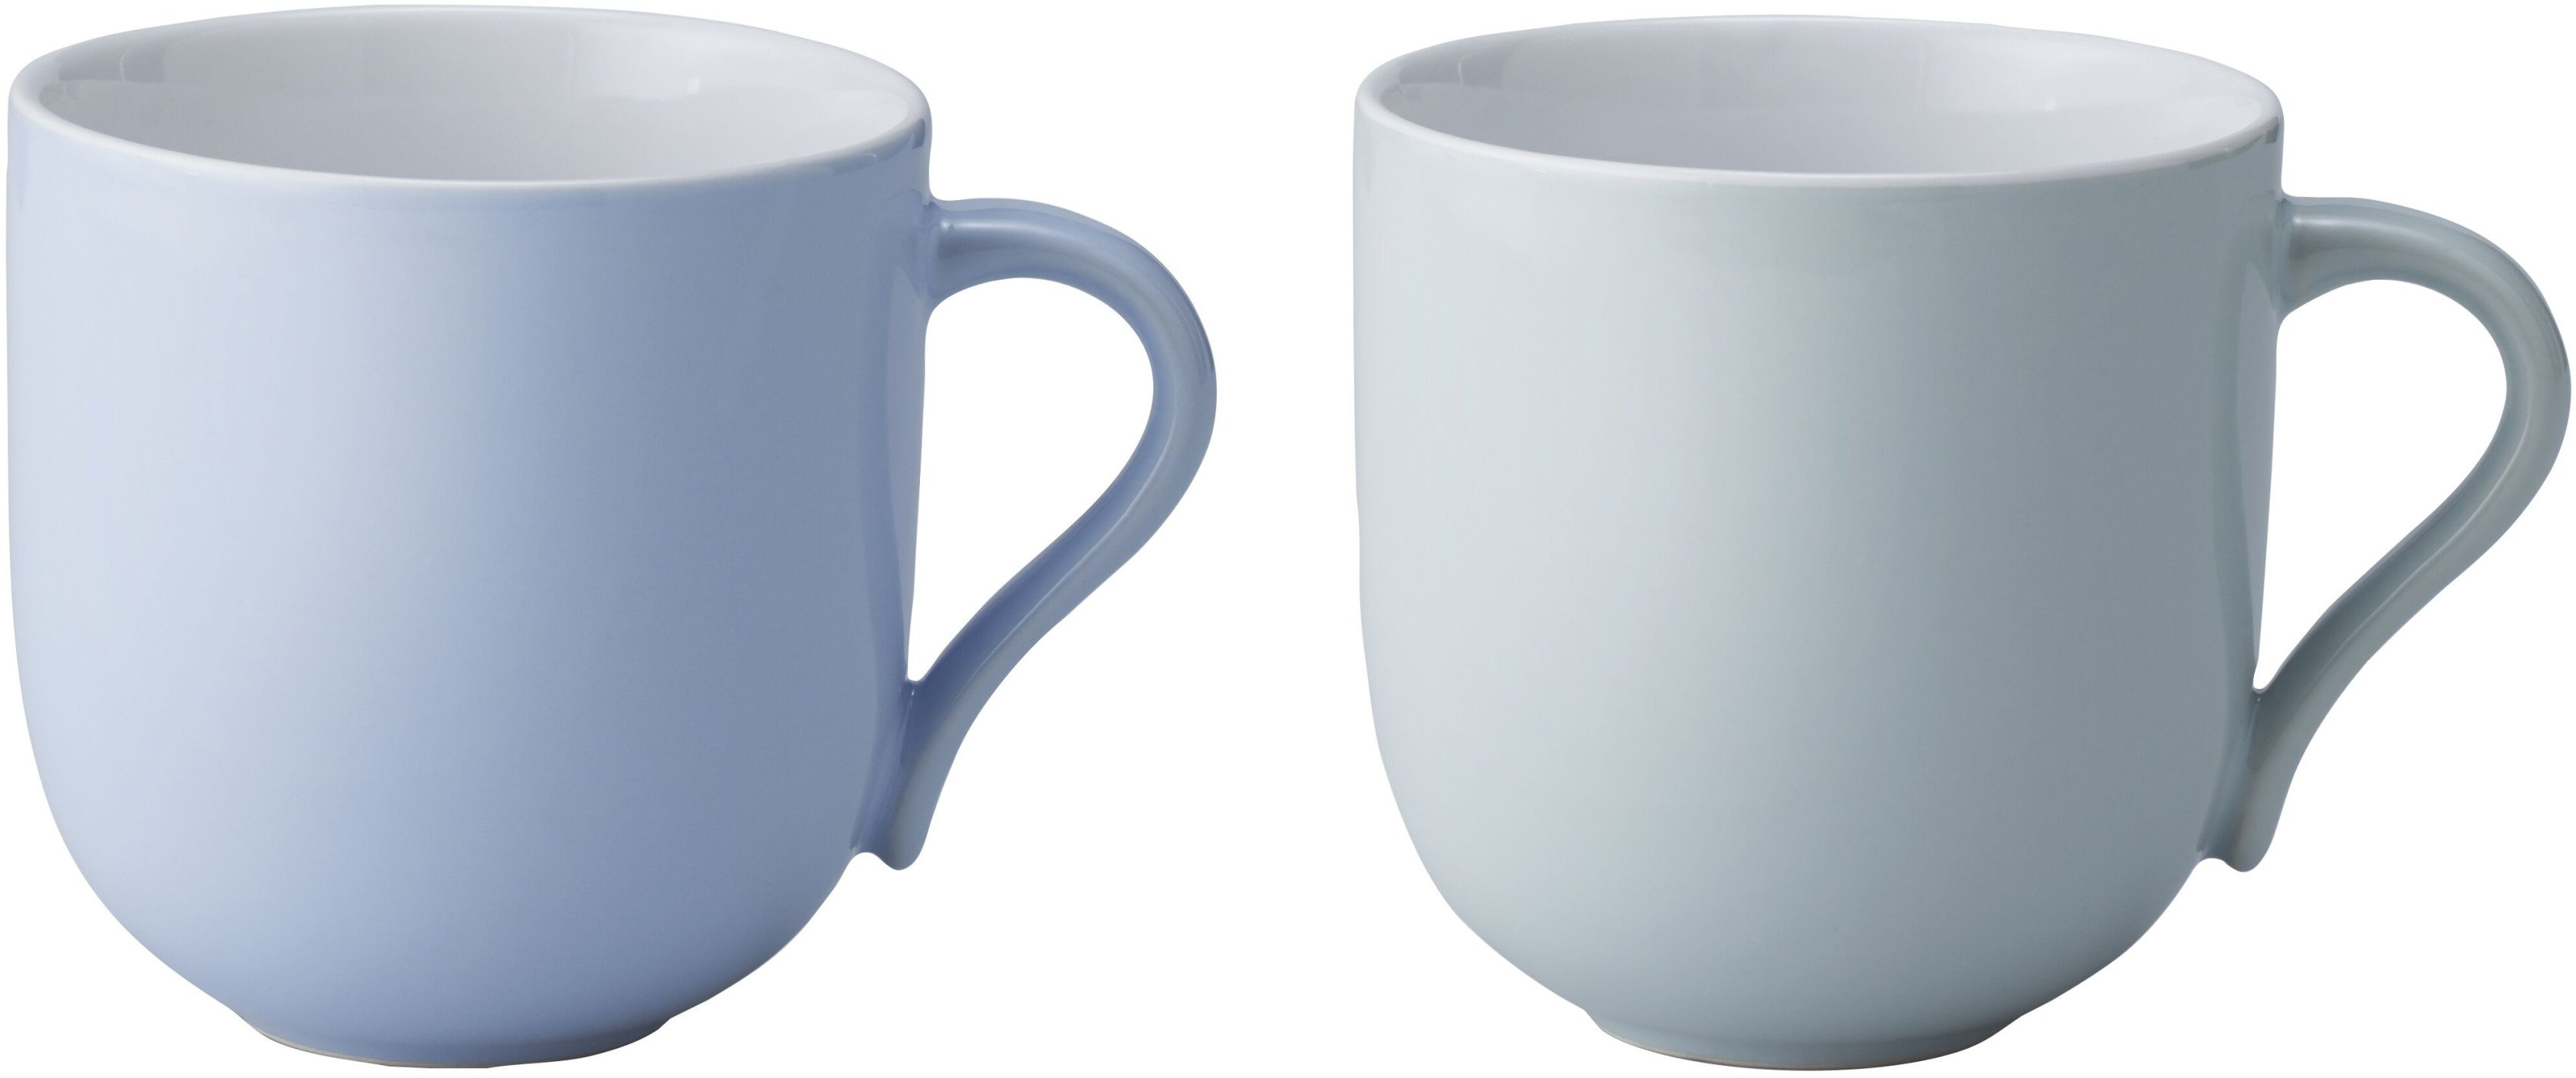 Pair of Blue Cups L Emma by HolmbäckNordentoft for Stelton